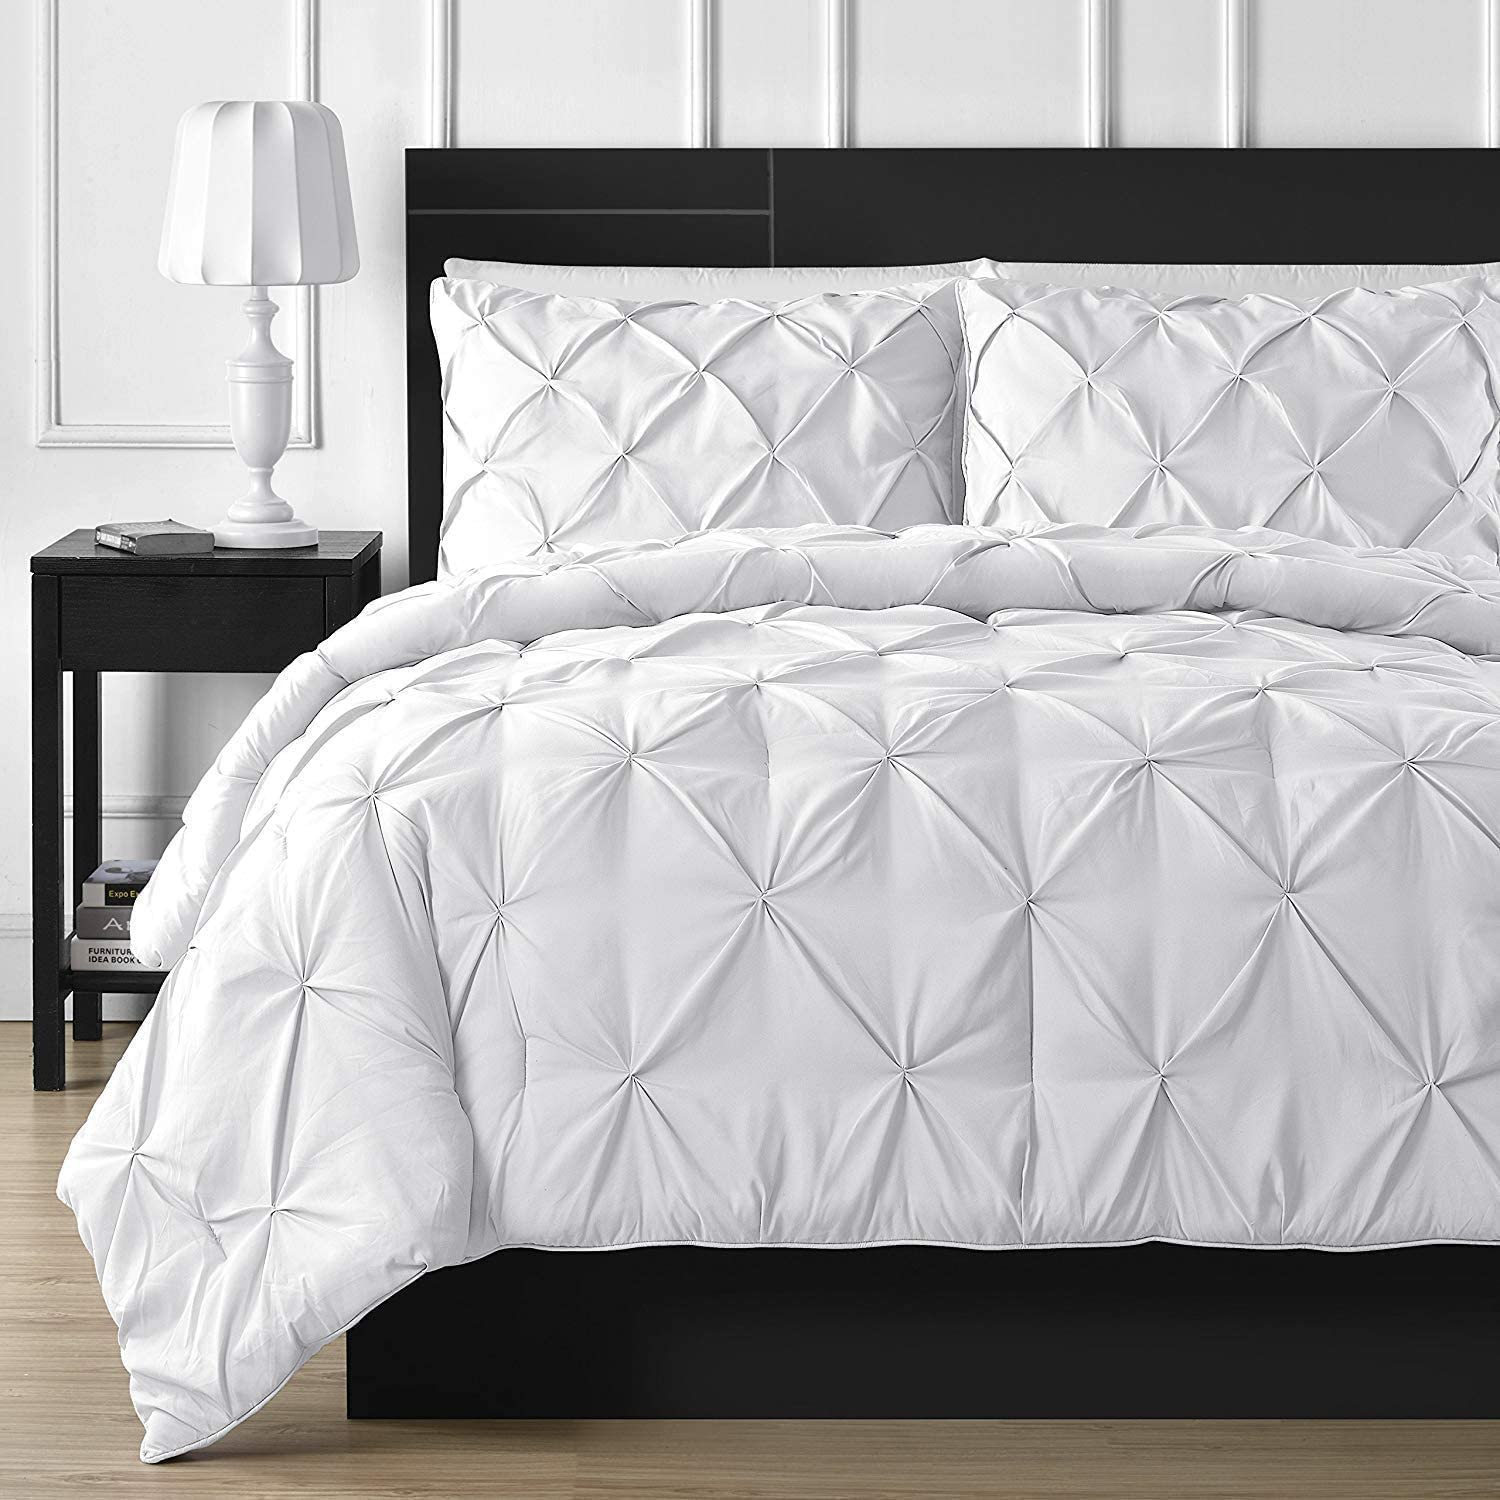 Express trading Pinch Pleated Duvet Cover 100% Piece 5 Set Import Egypt Max 75% OFF